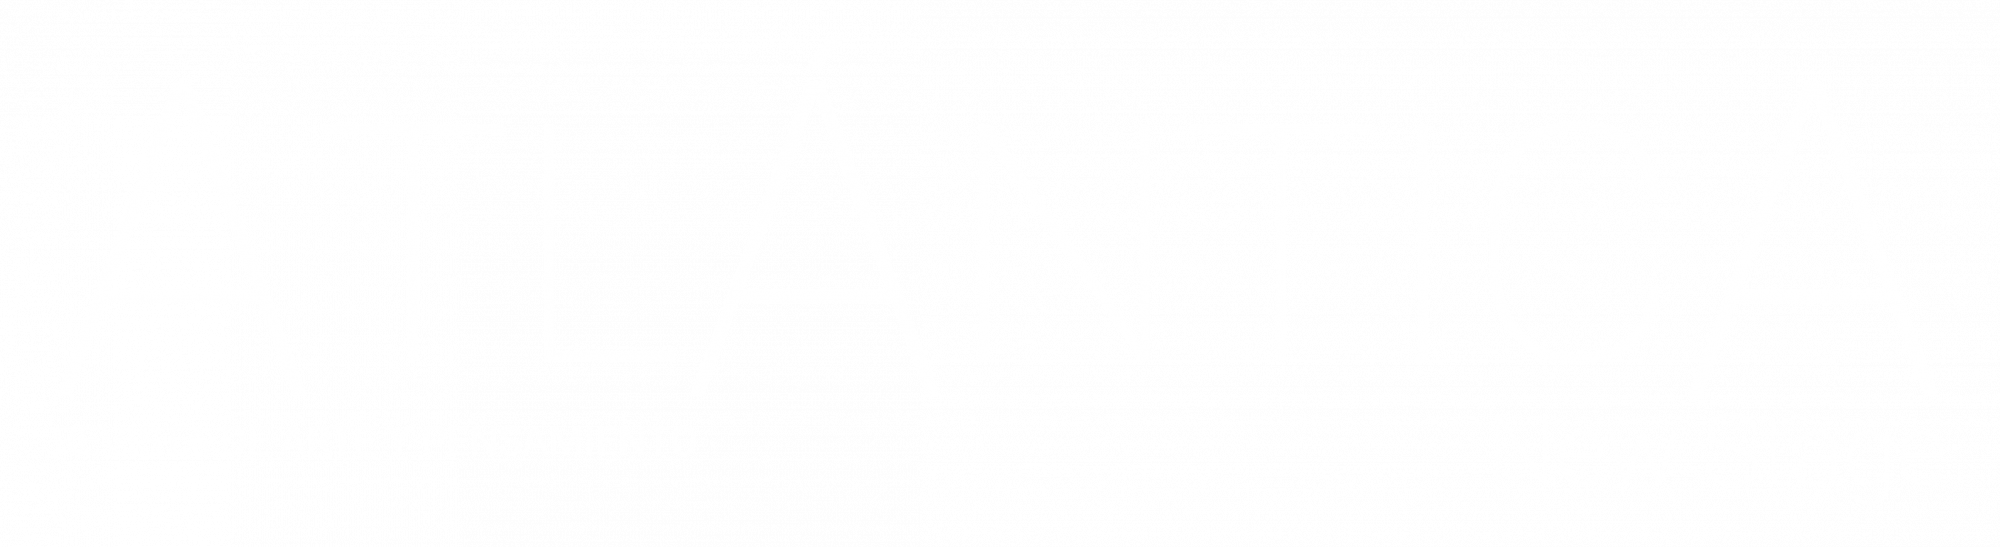 Logo of Atlántica journal. New Stage